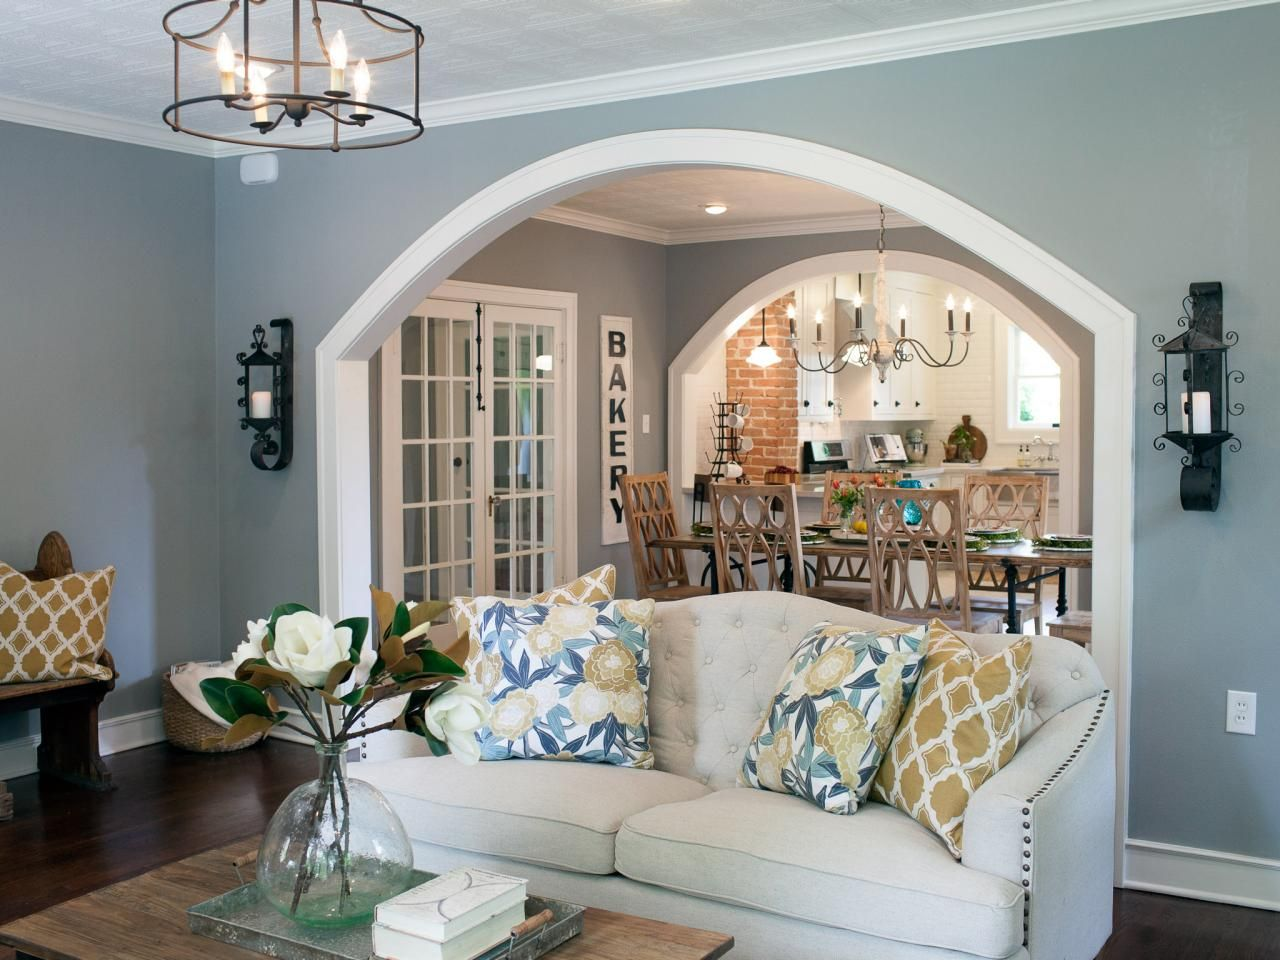 Wall color and ceiling light. The wall dividing the living and dining rooms  is opened up with a wide archway for a more open feel.